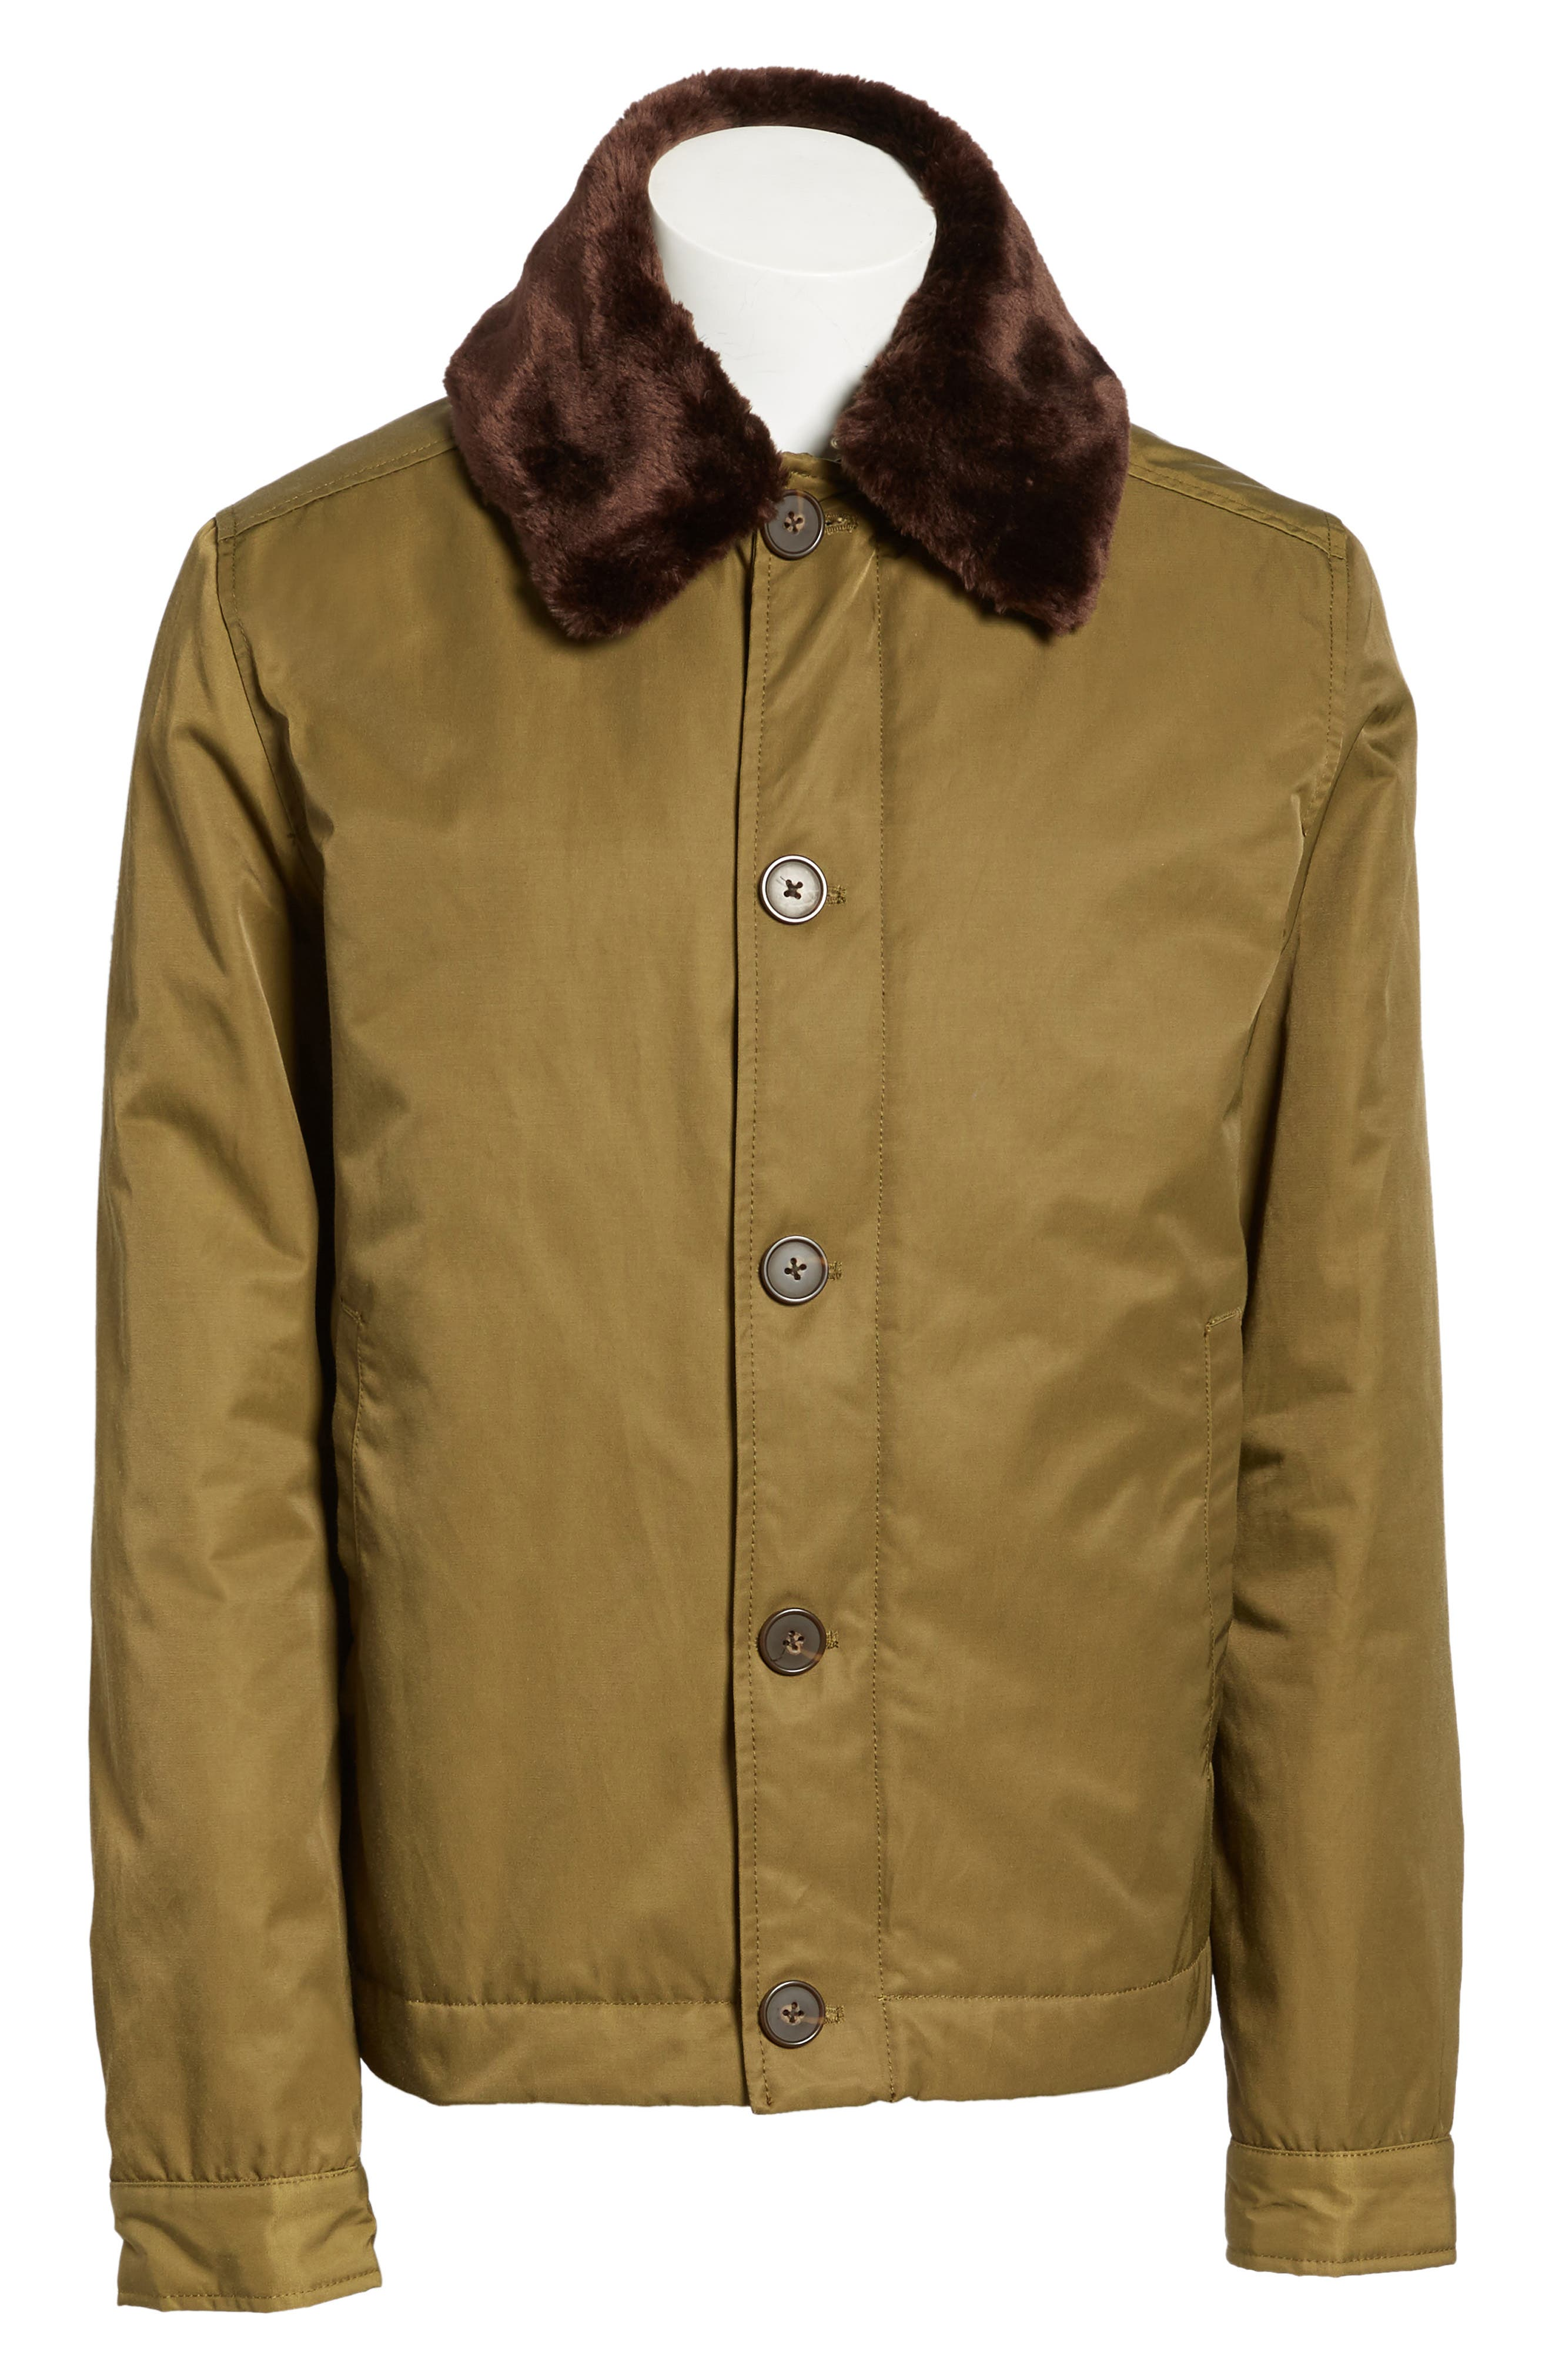 Bystander Jacket with Faux Fur Collar,                             Alternate thumbnail 5, color,                             346